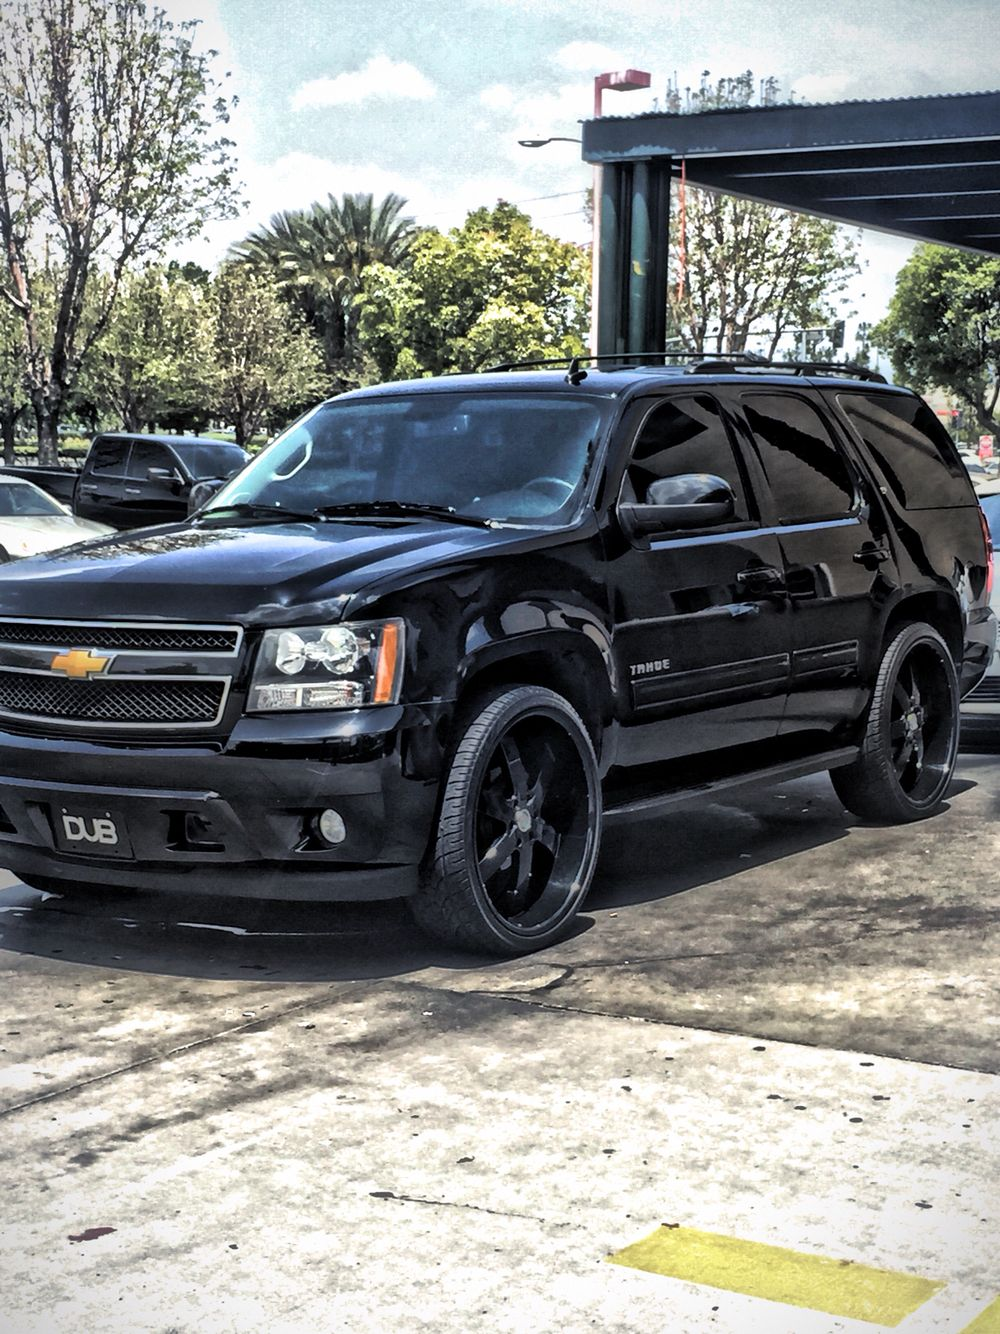 Black chevy tahoe sittin on 28 inch rims cars and motorcycles pinterest chevy wheels and chevrolet tahoe